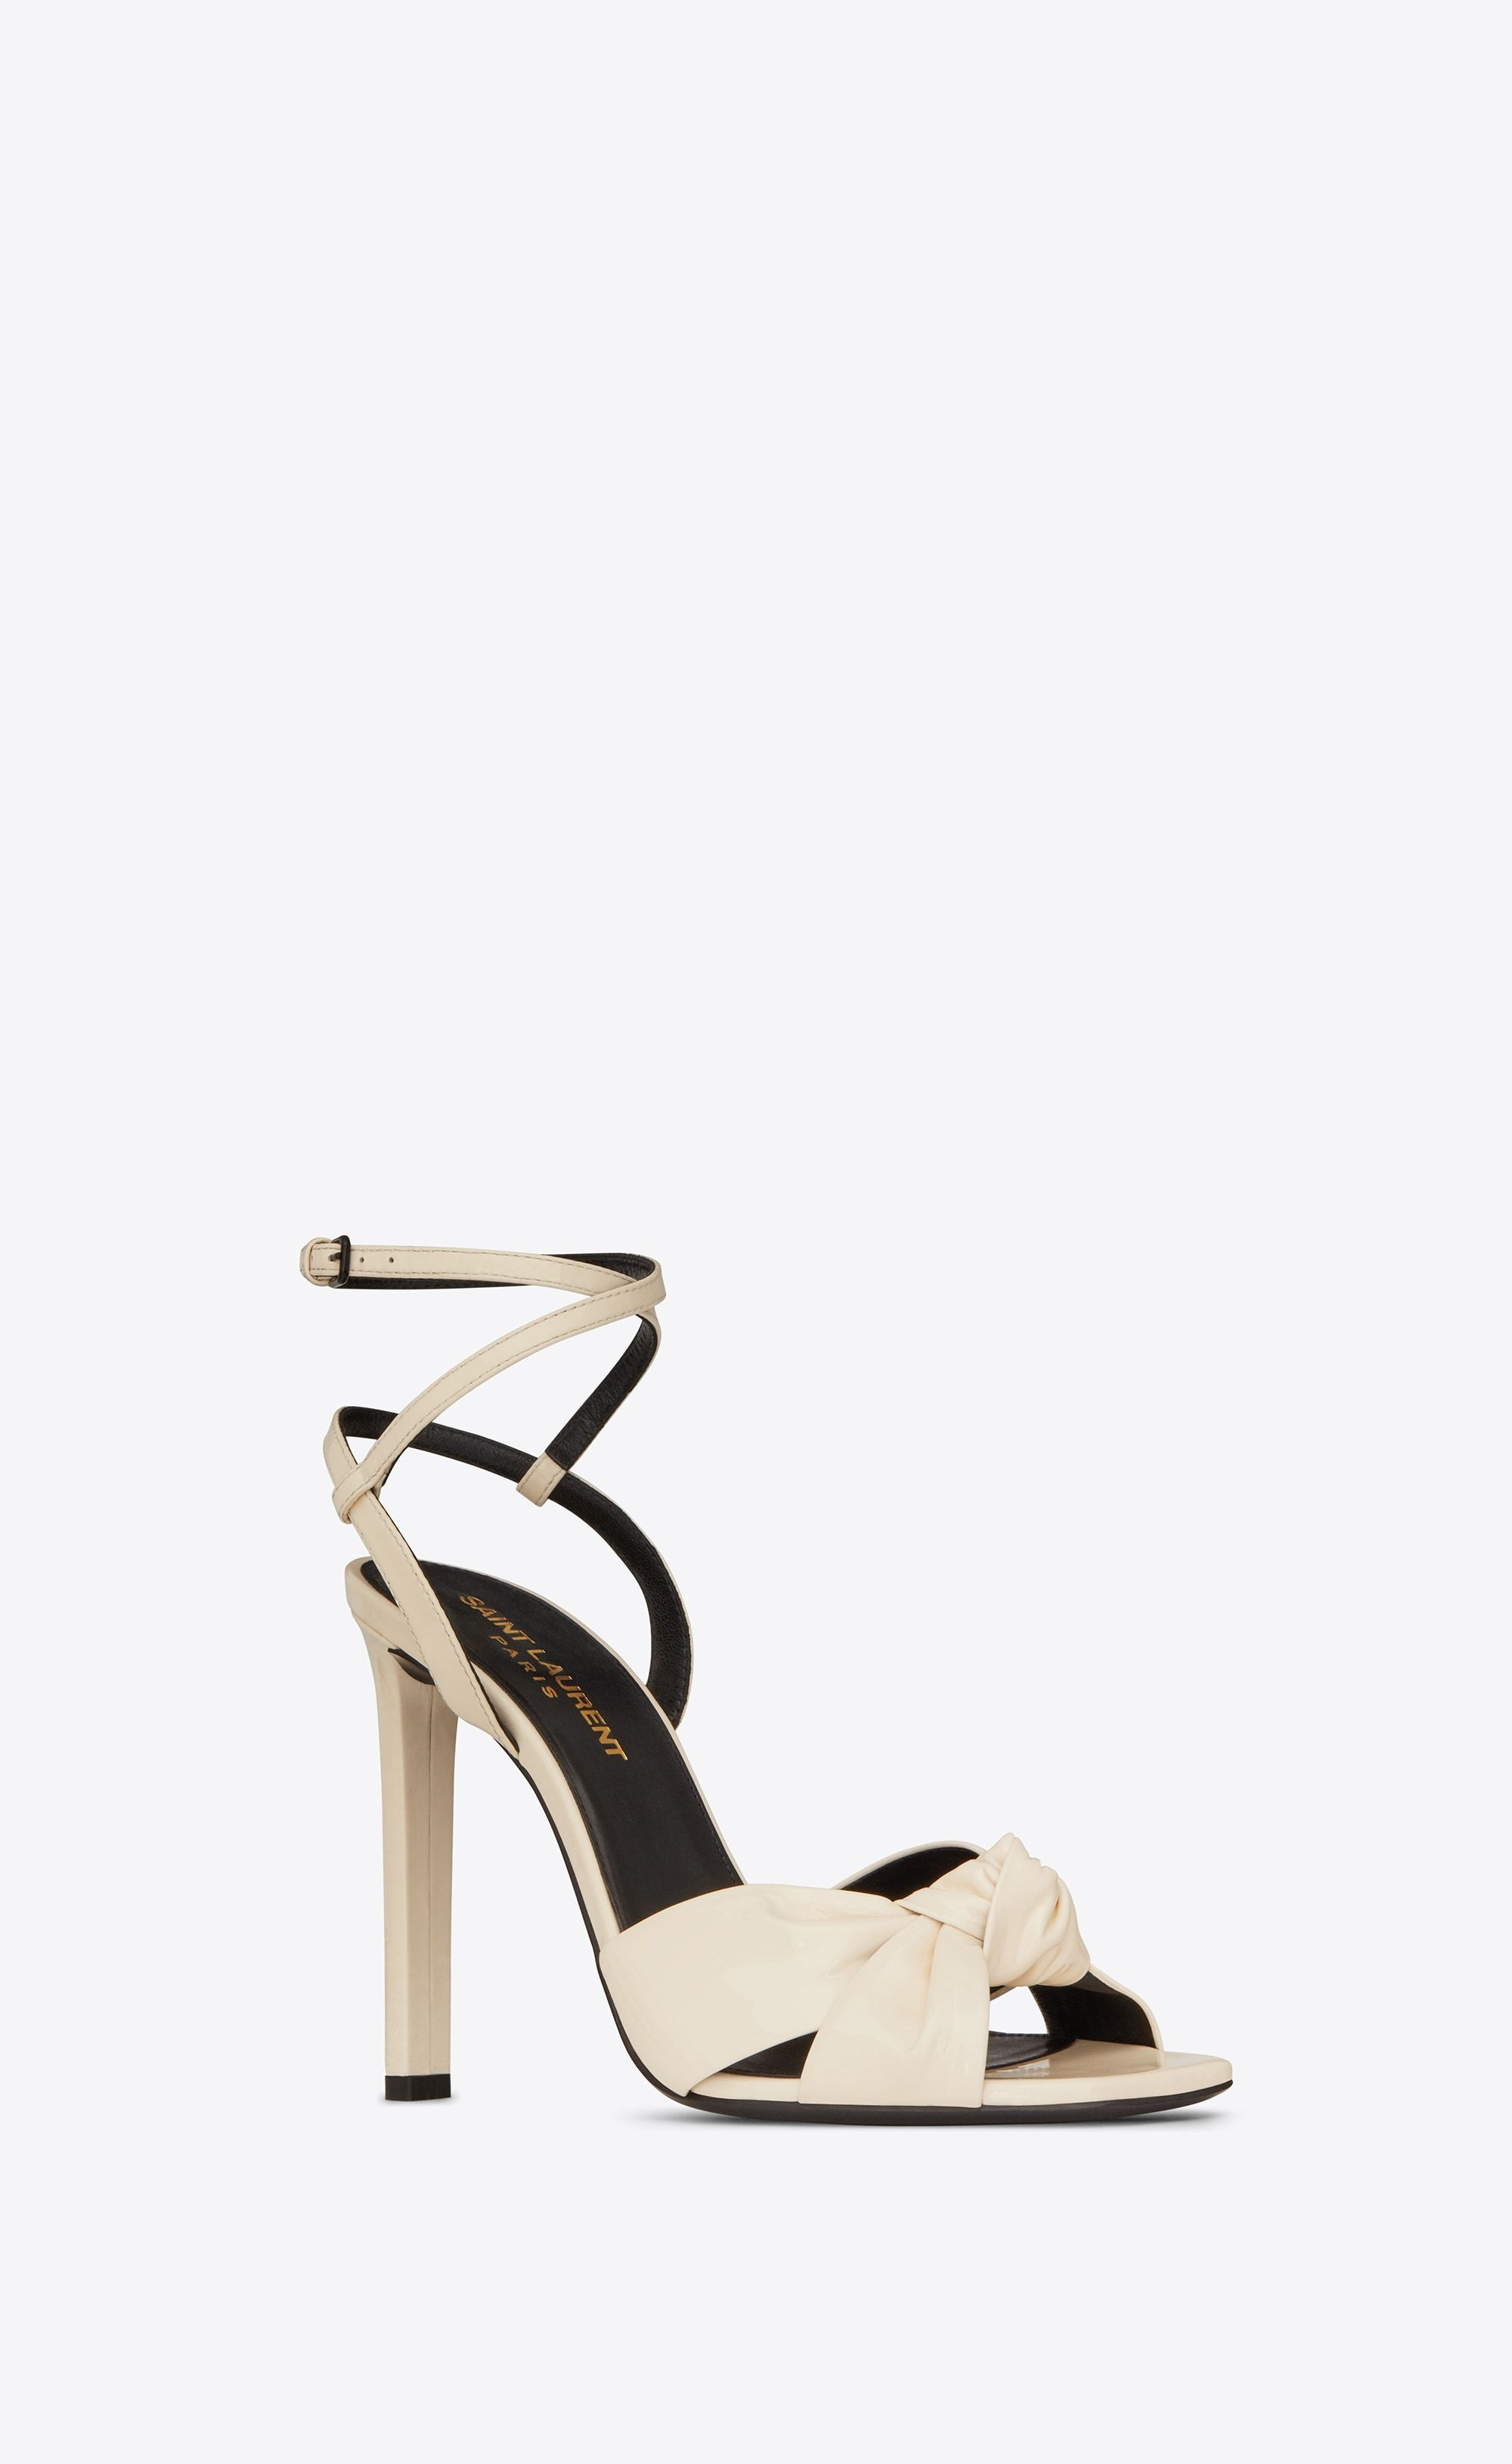 4edfe44233f944 Saint Laurent - Amy sandal in patent porcelain leather ( 895 ...